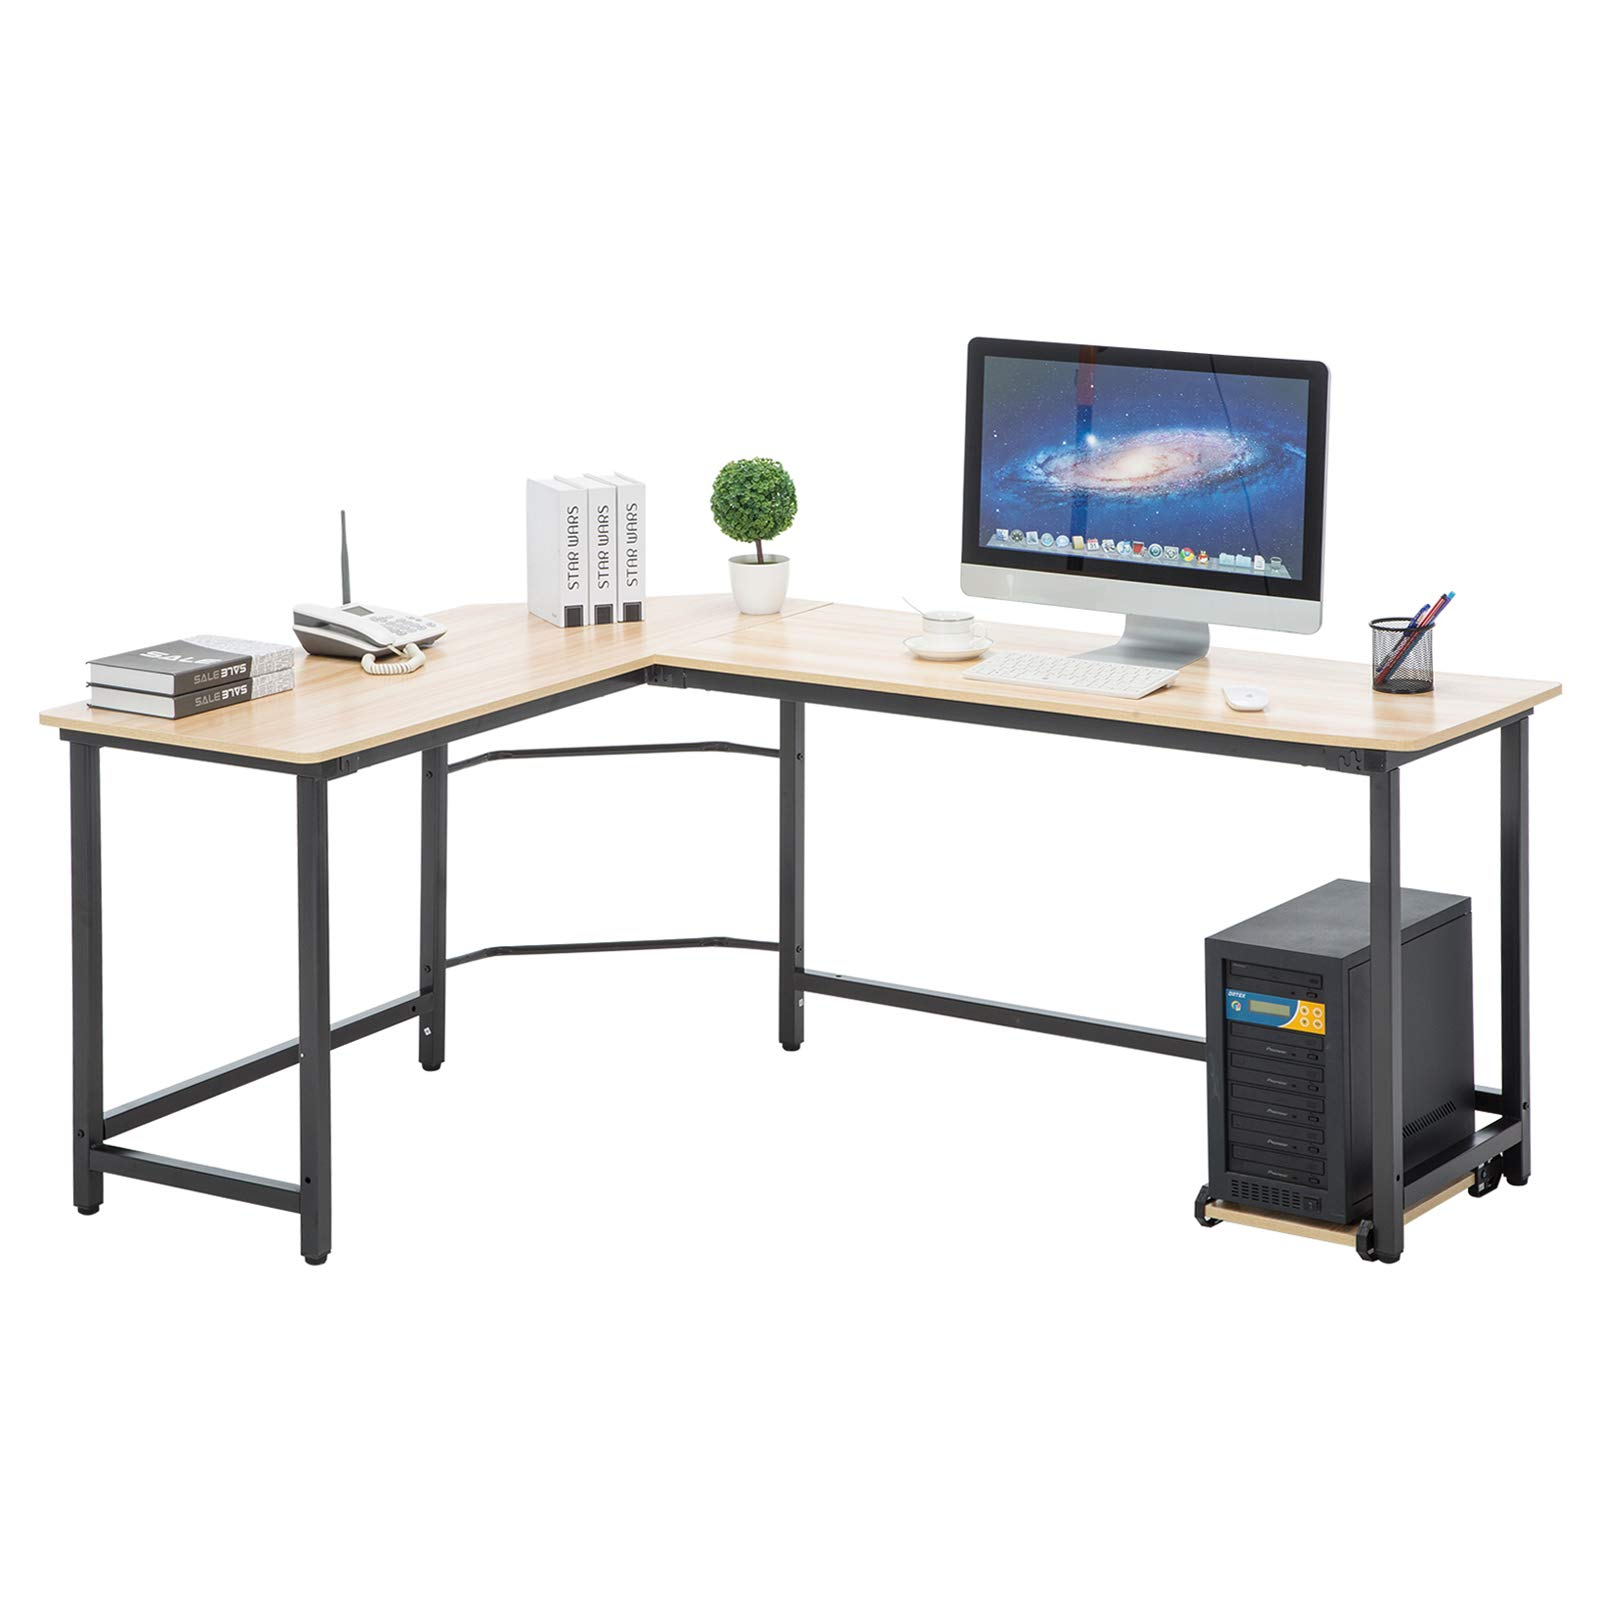 Mecor L-Shaped Modern Corner Computer Desk W/Free Cup Stand, Laptop PC Table Workstation Home Office, Wood & Metal Frame, Beige